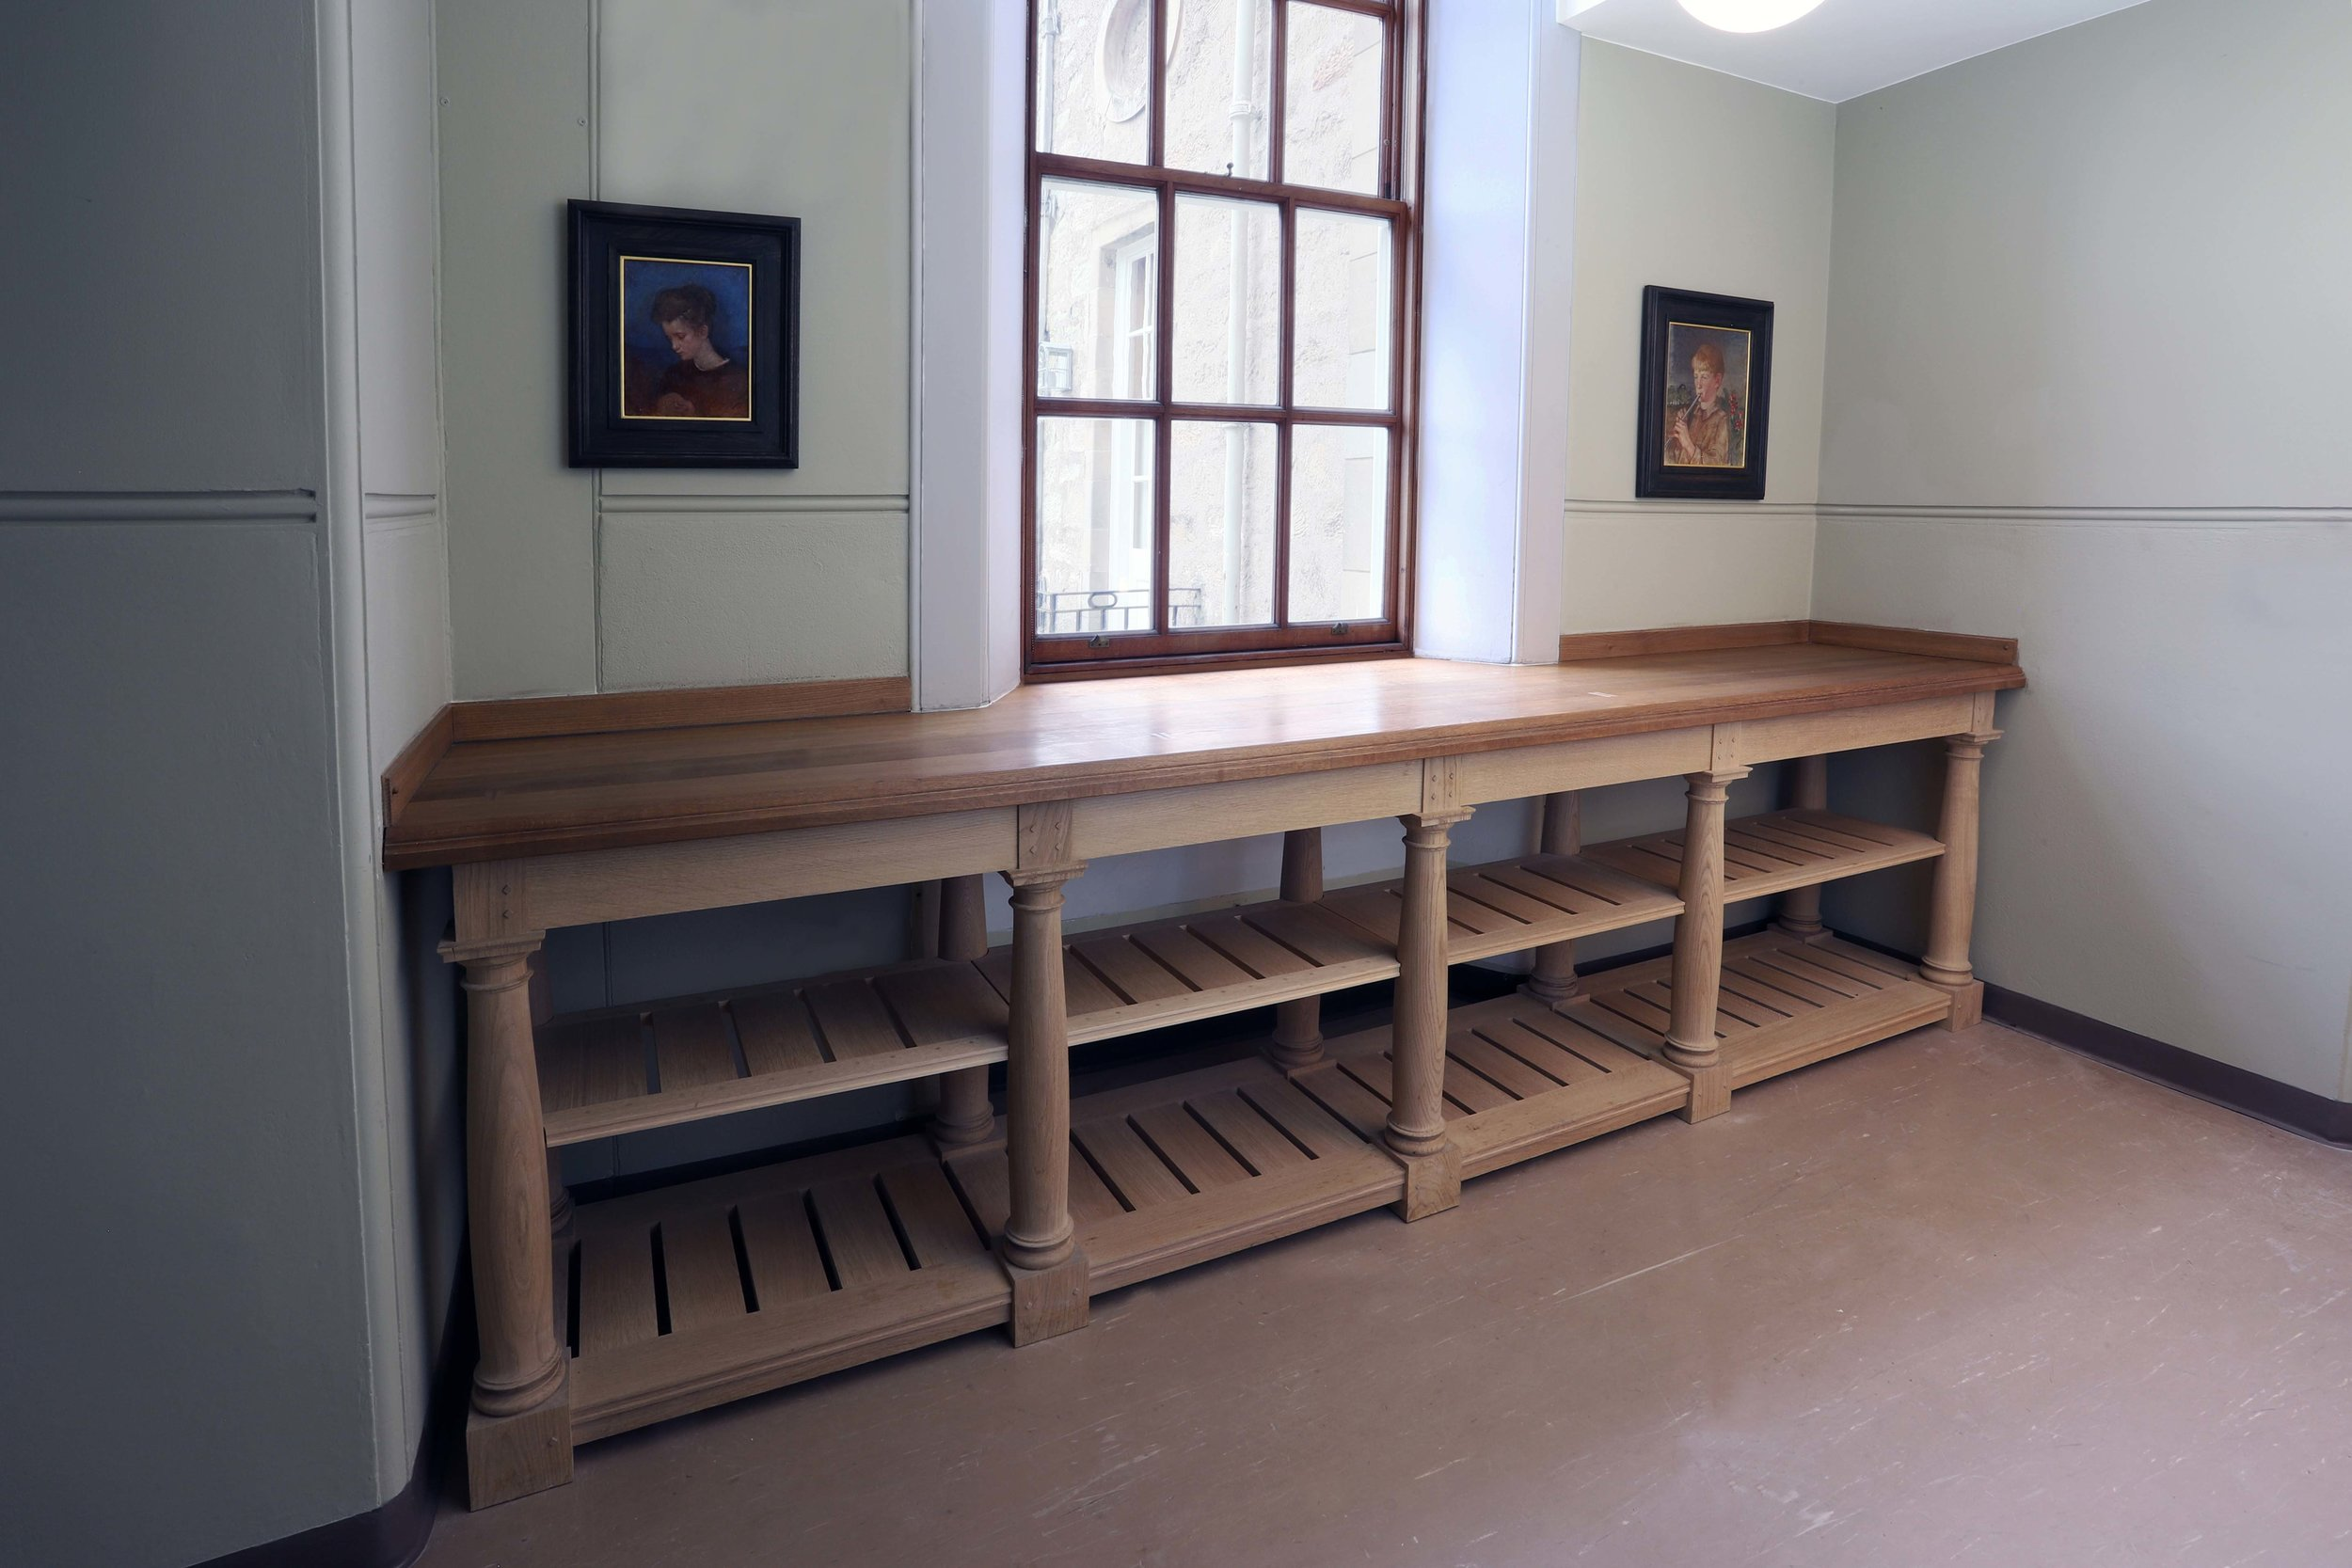 Bespoke kitchen gallery counters, Marchmont House.